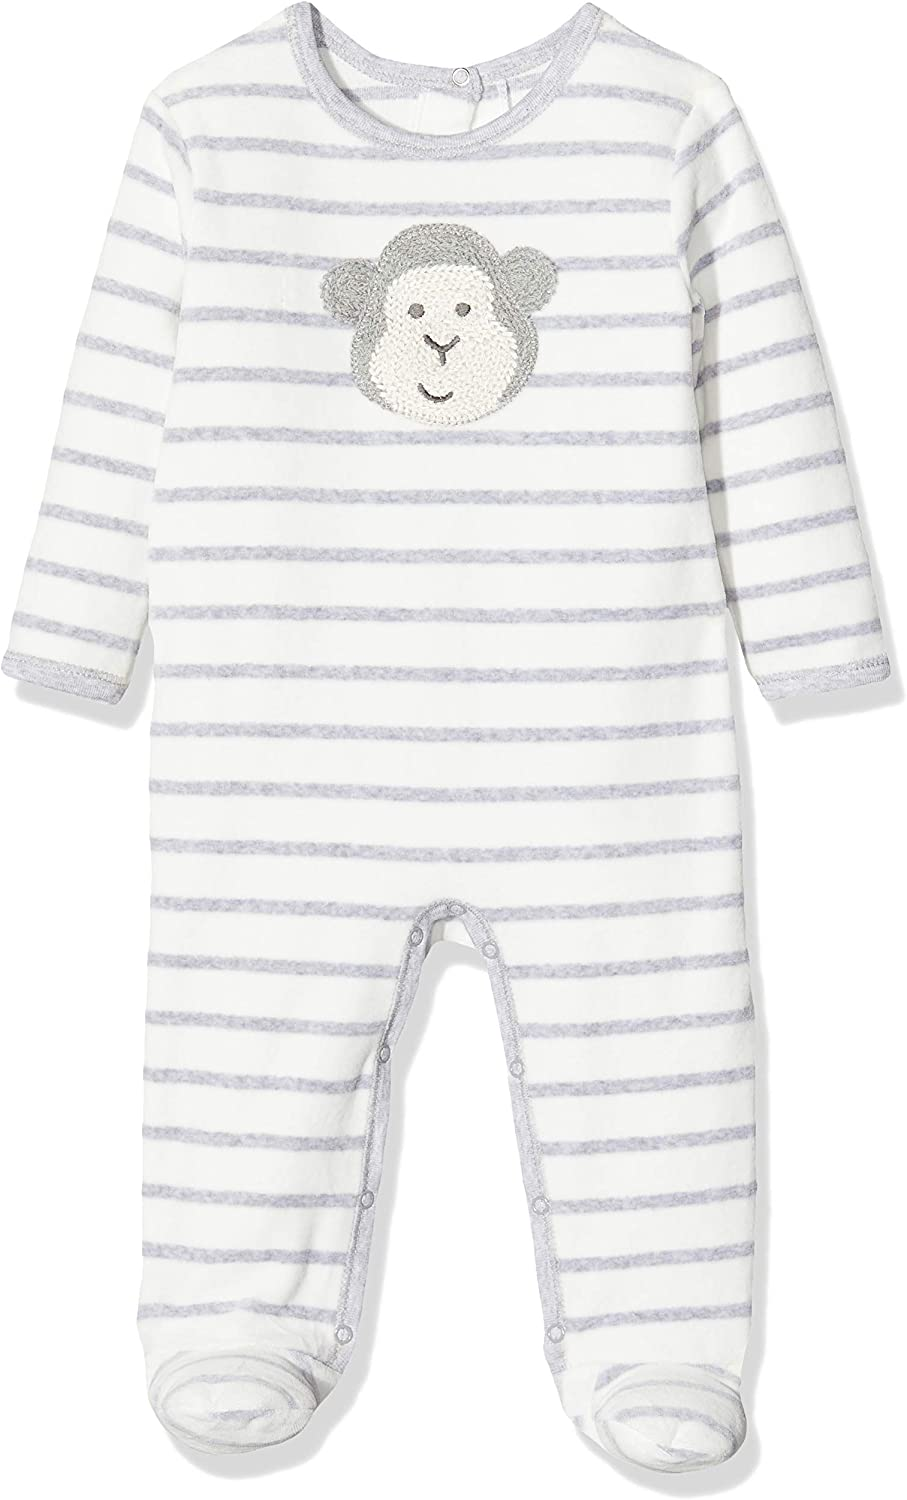 Bellybutton mother nature /& me Unisex Baby Schlafstrampler